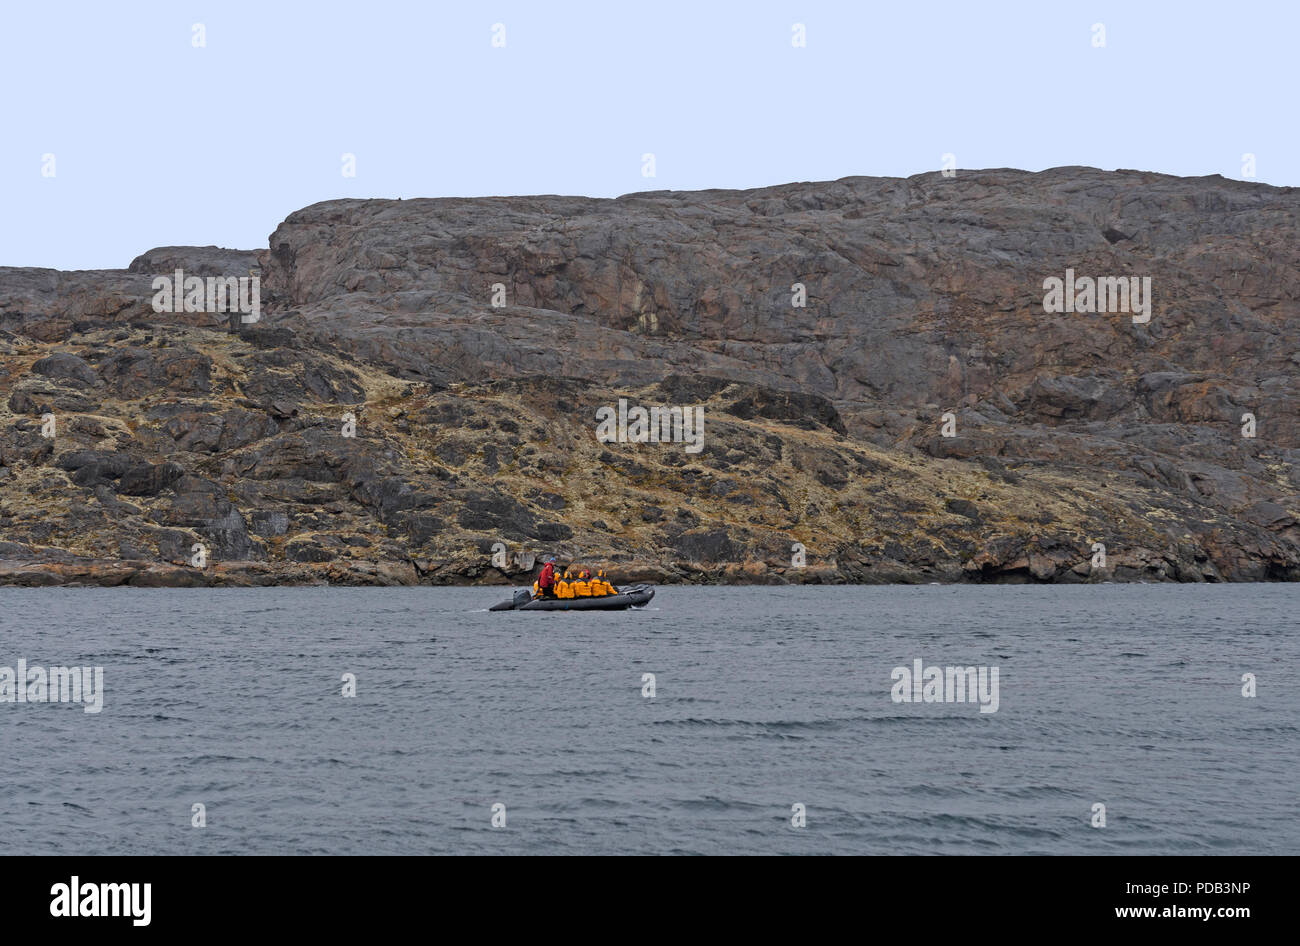 Explorers Cruising the Arctic in a Raft near the Lower Savage Islands on Baffin Isalnd in Nunavut, Canada - Stock Image